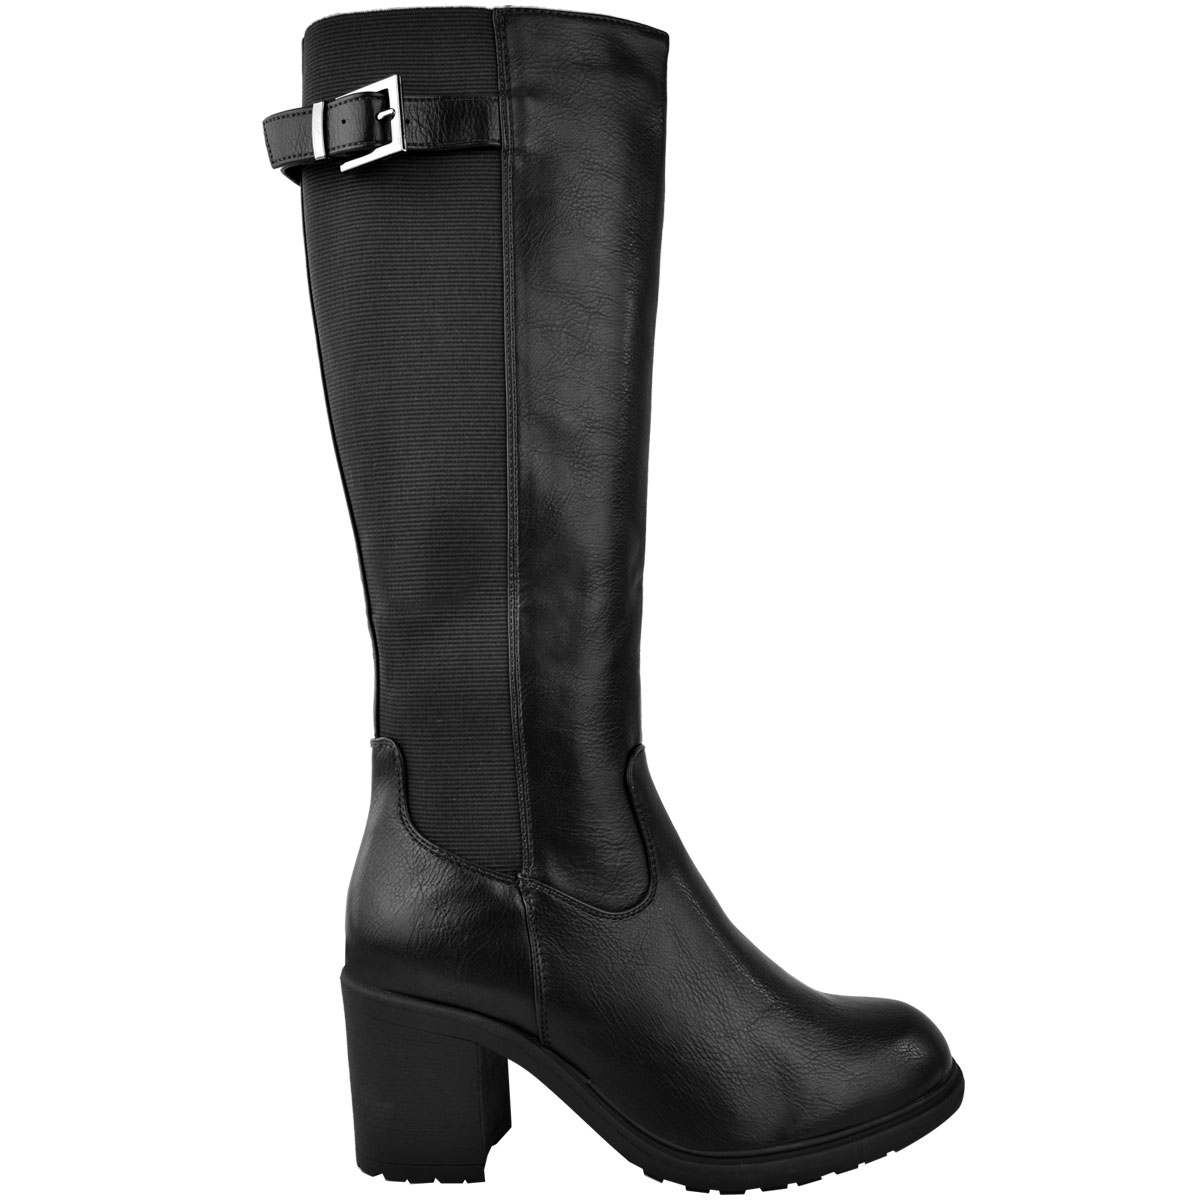 Womens-Ladies-Calf-High-Boots-Riding-Stretch-Wide-Leg-Low-Block-Heel-Winter-Size thumbnail 4